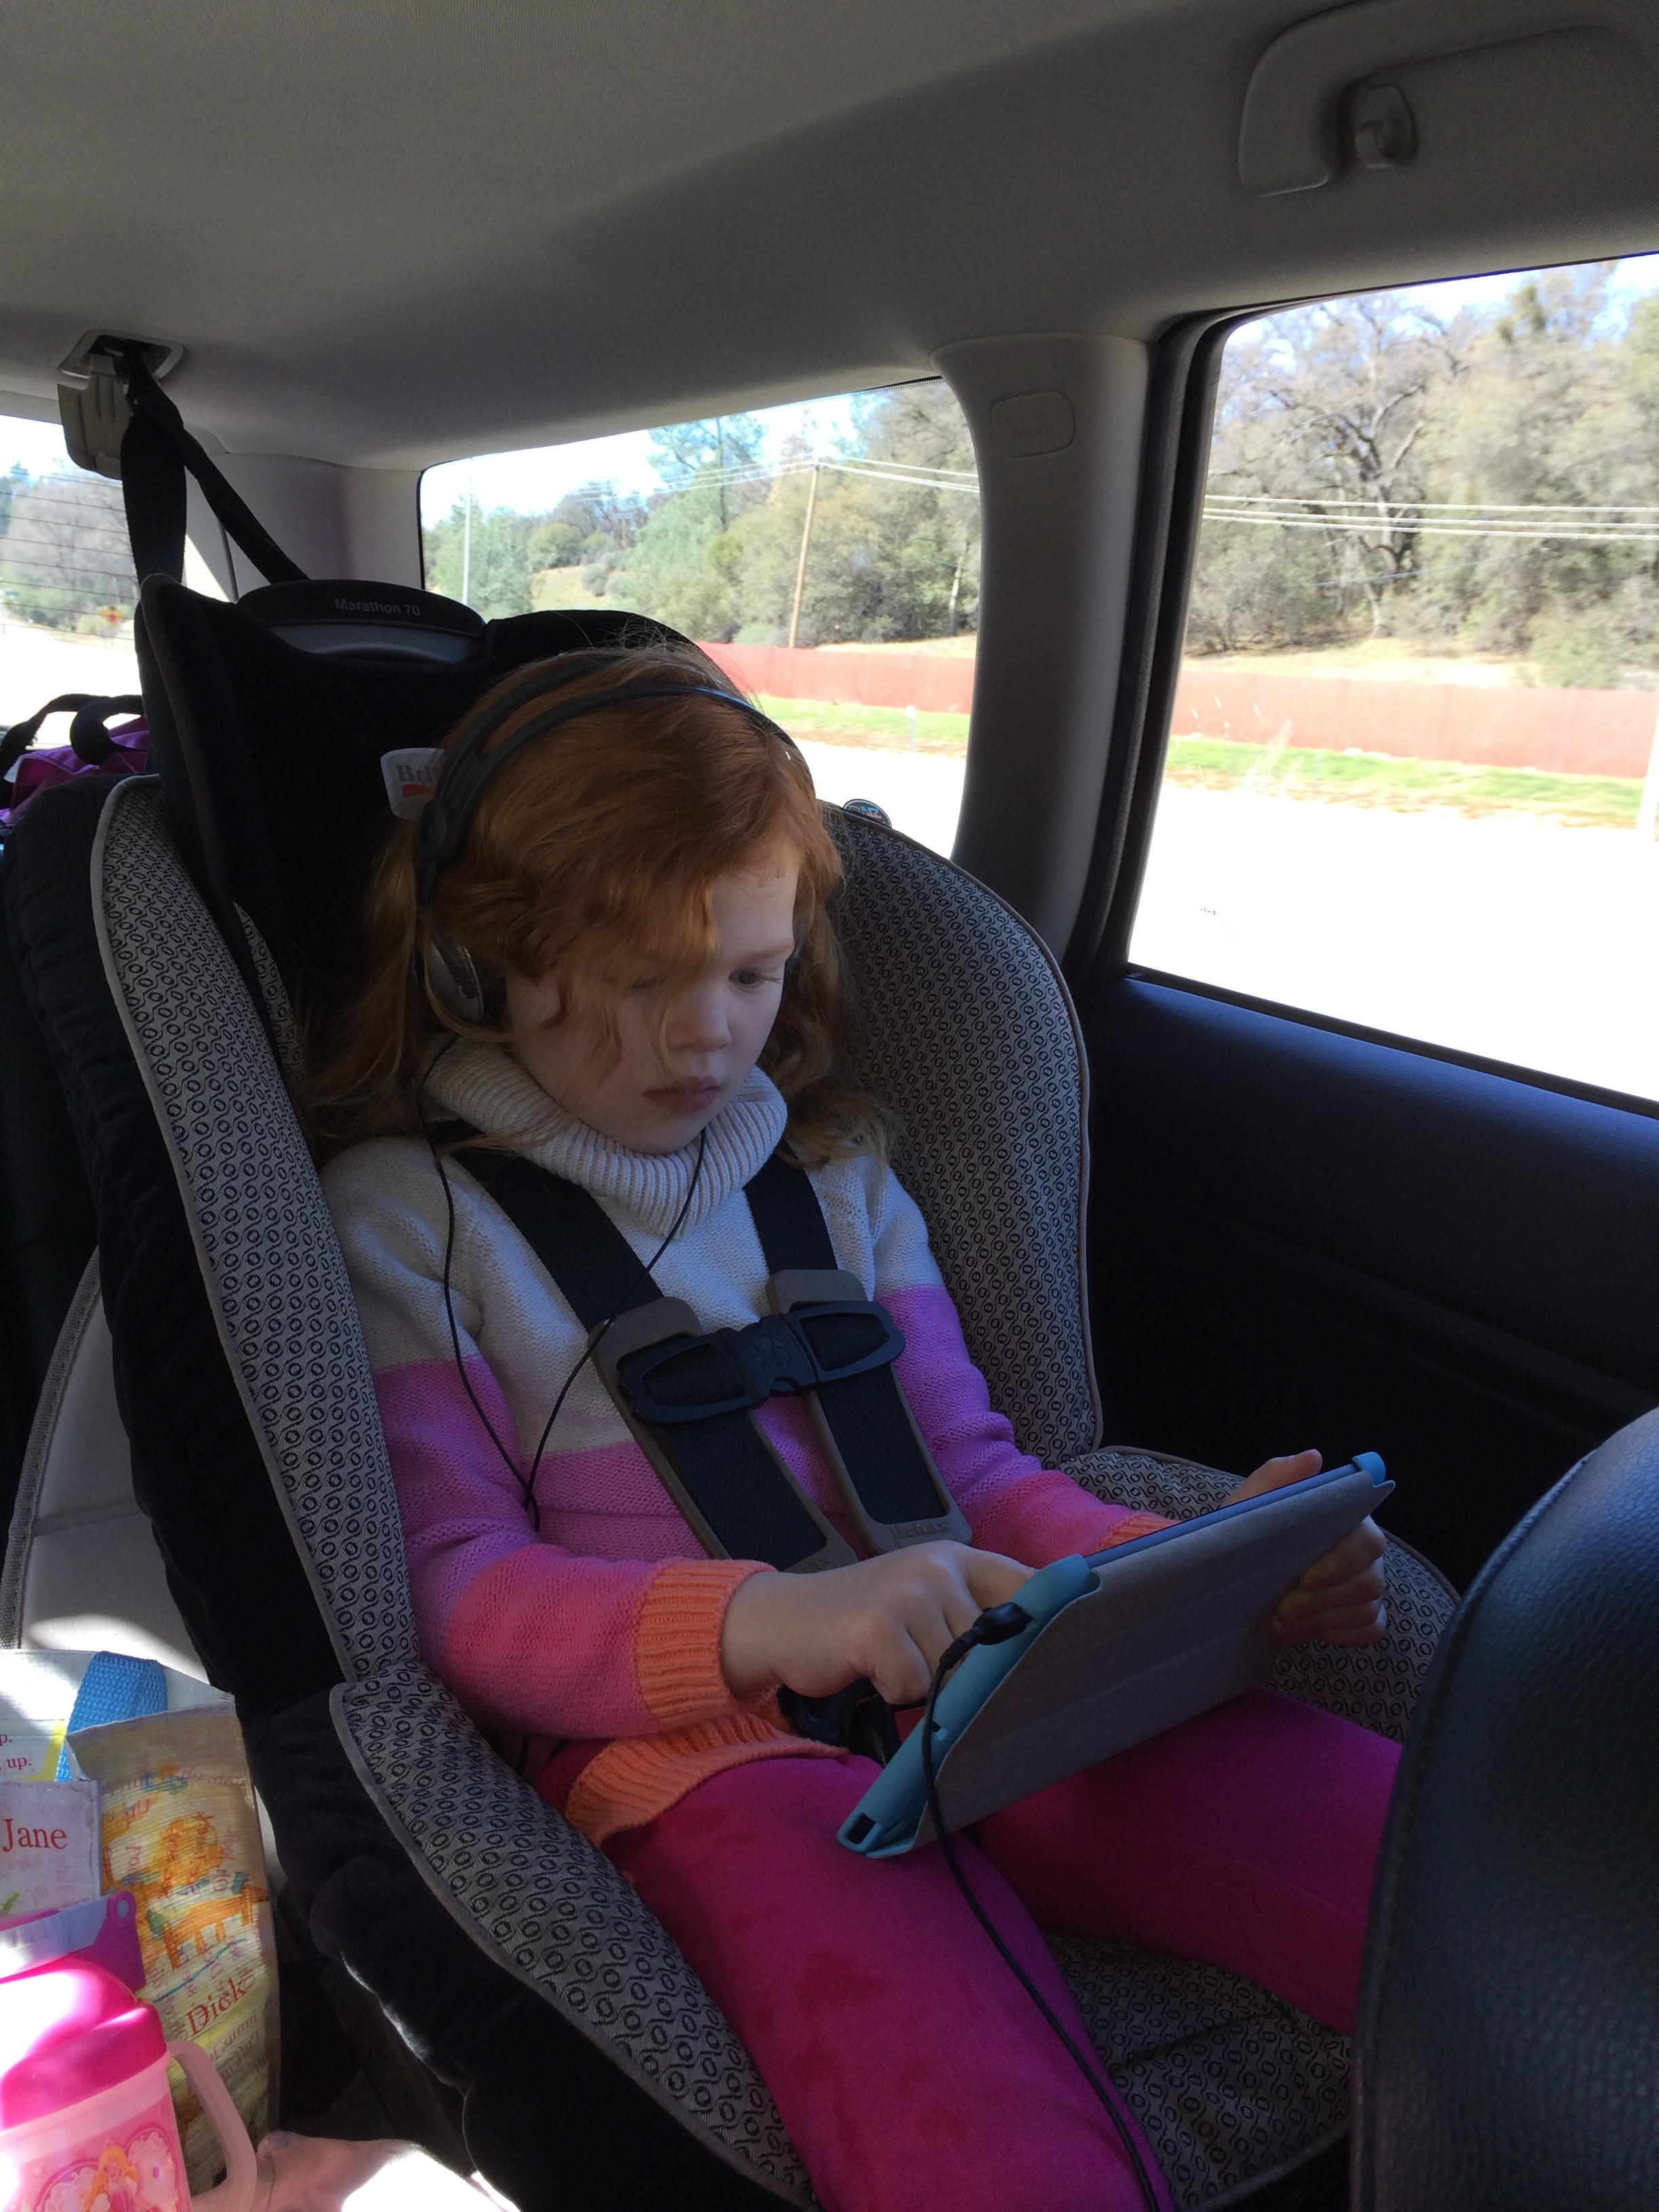 Happily entertained on the drive.